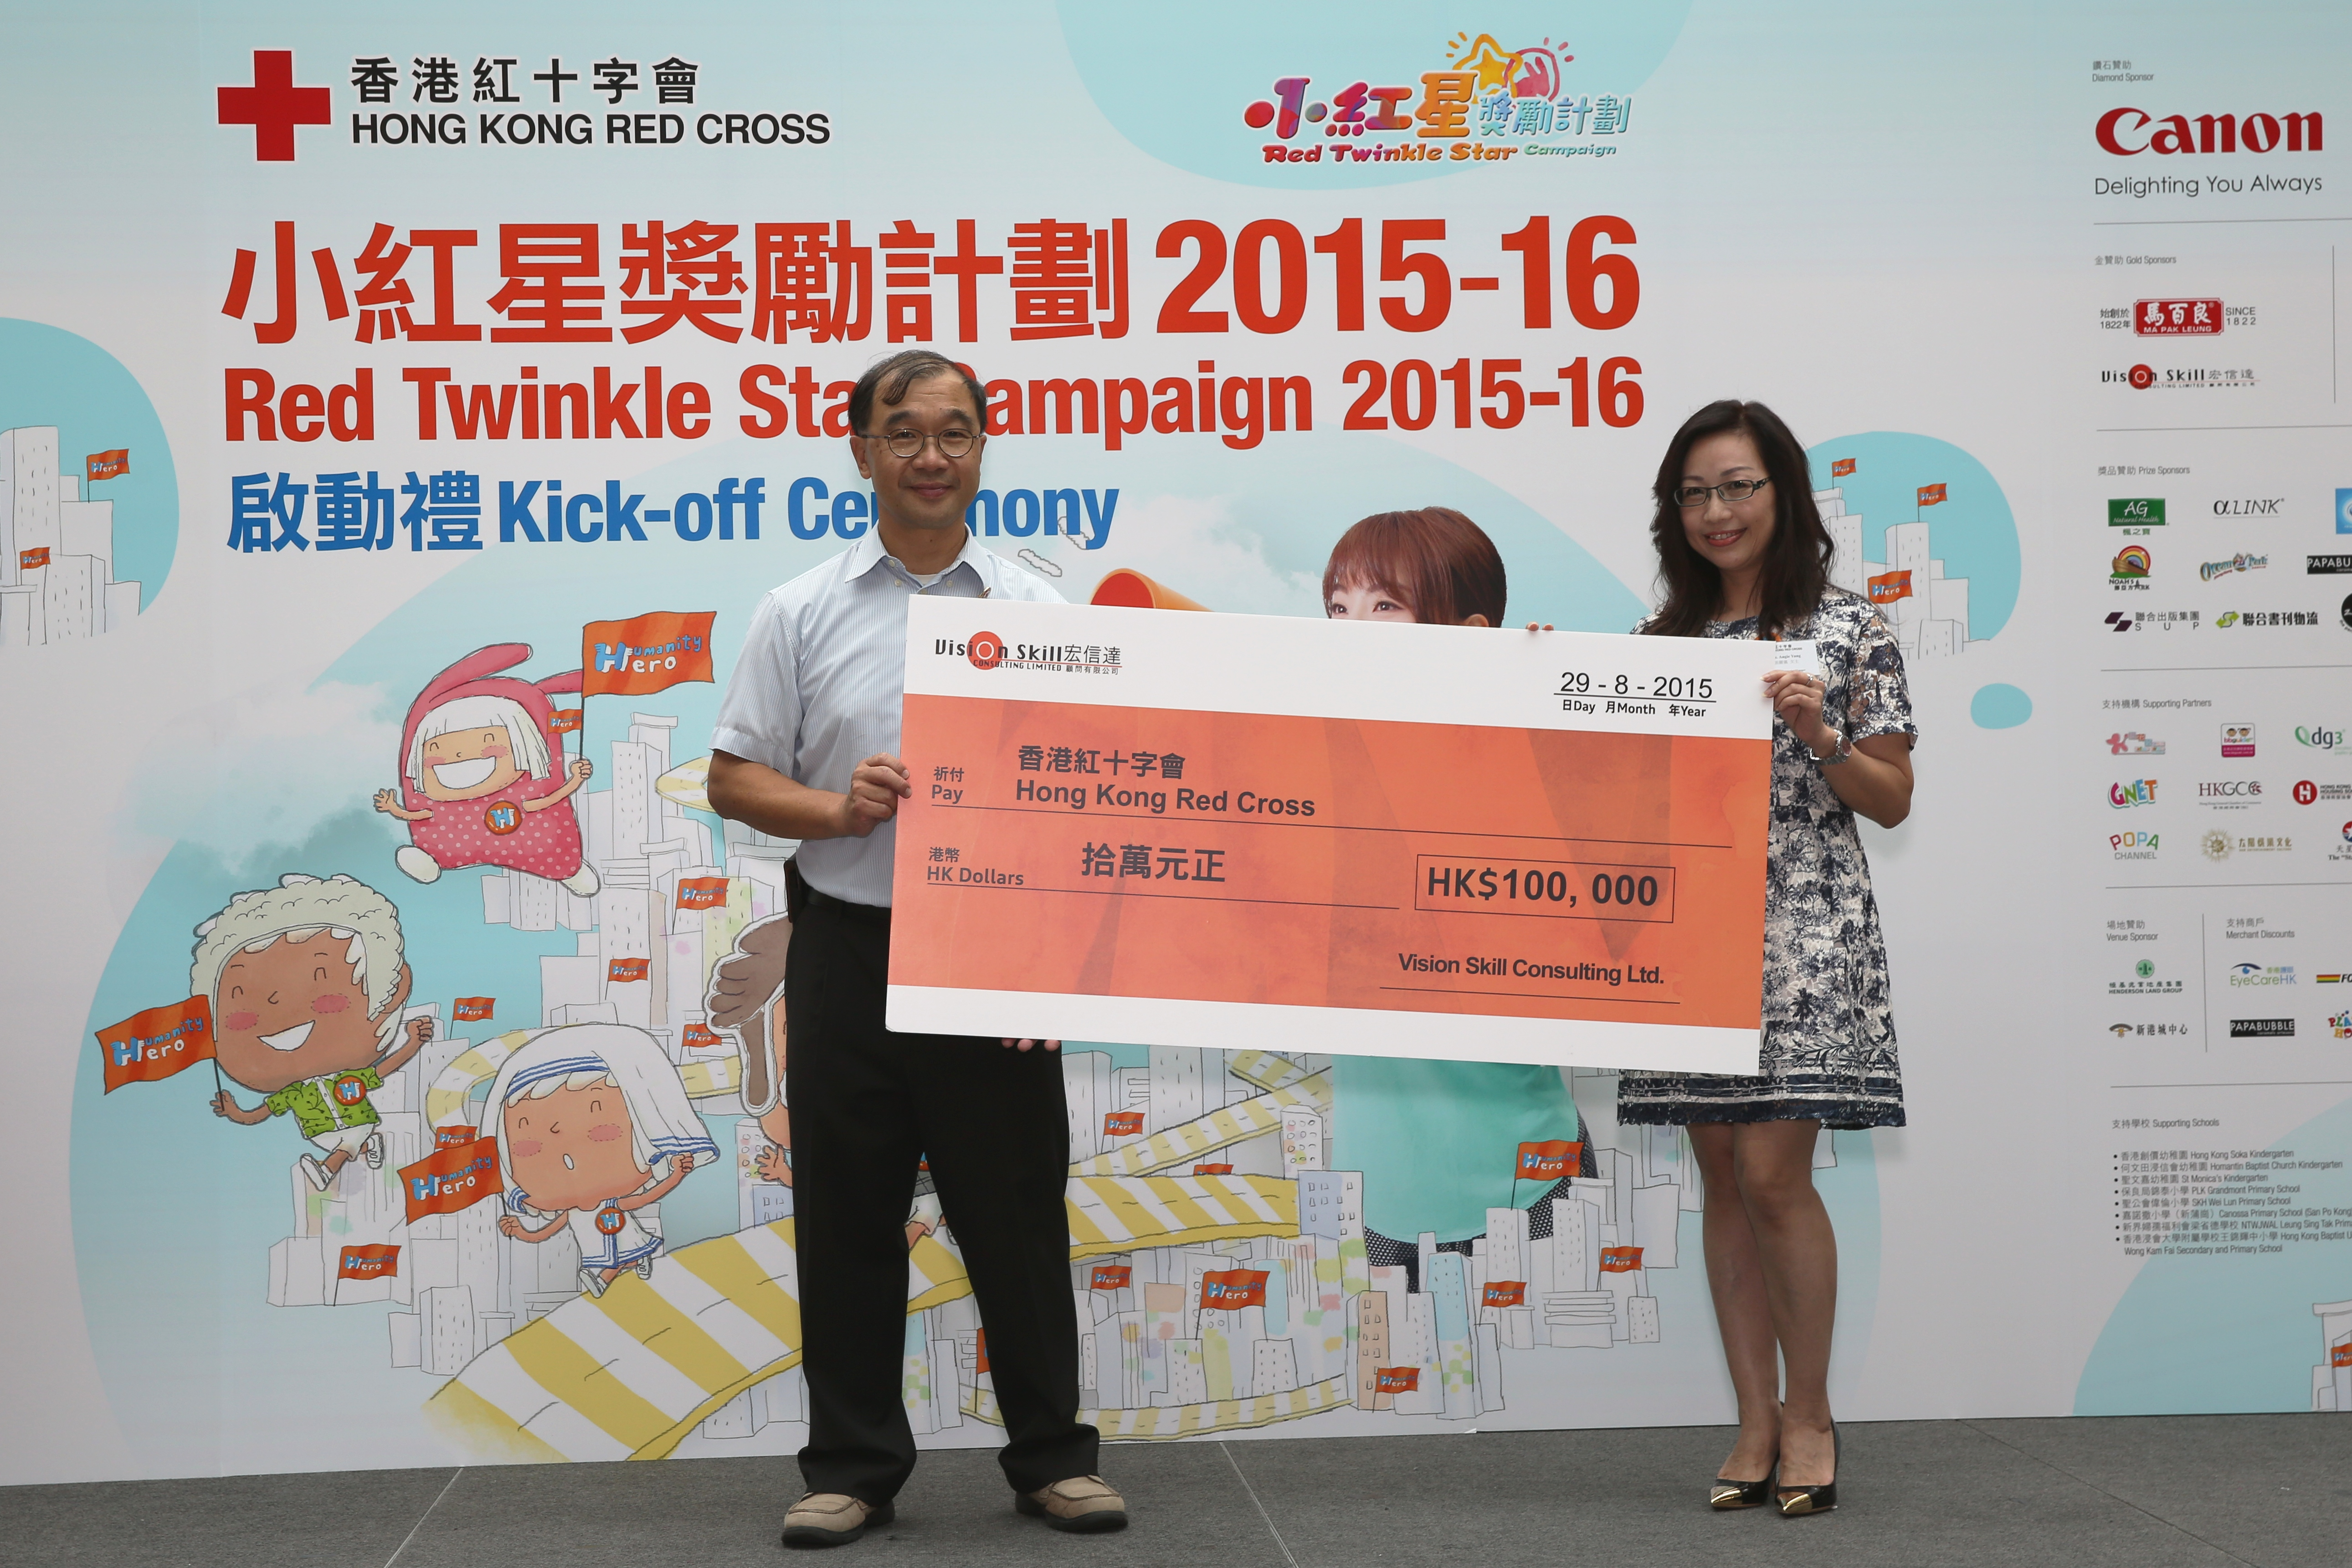 red-twinkle-star-campaign-2015-2016_3